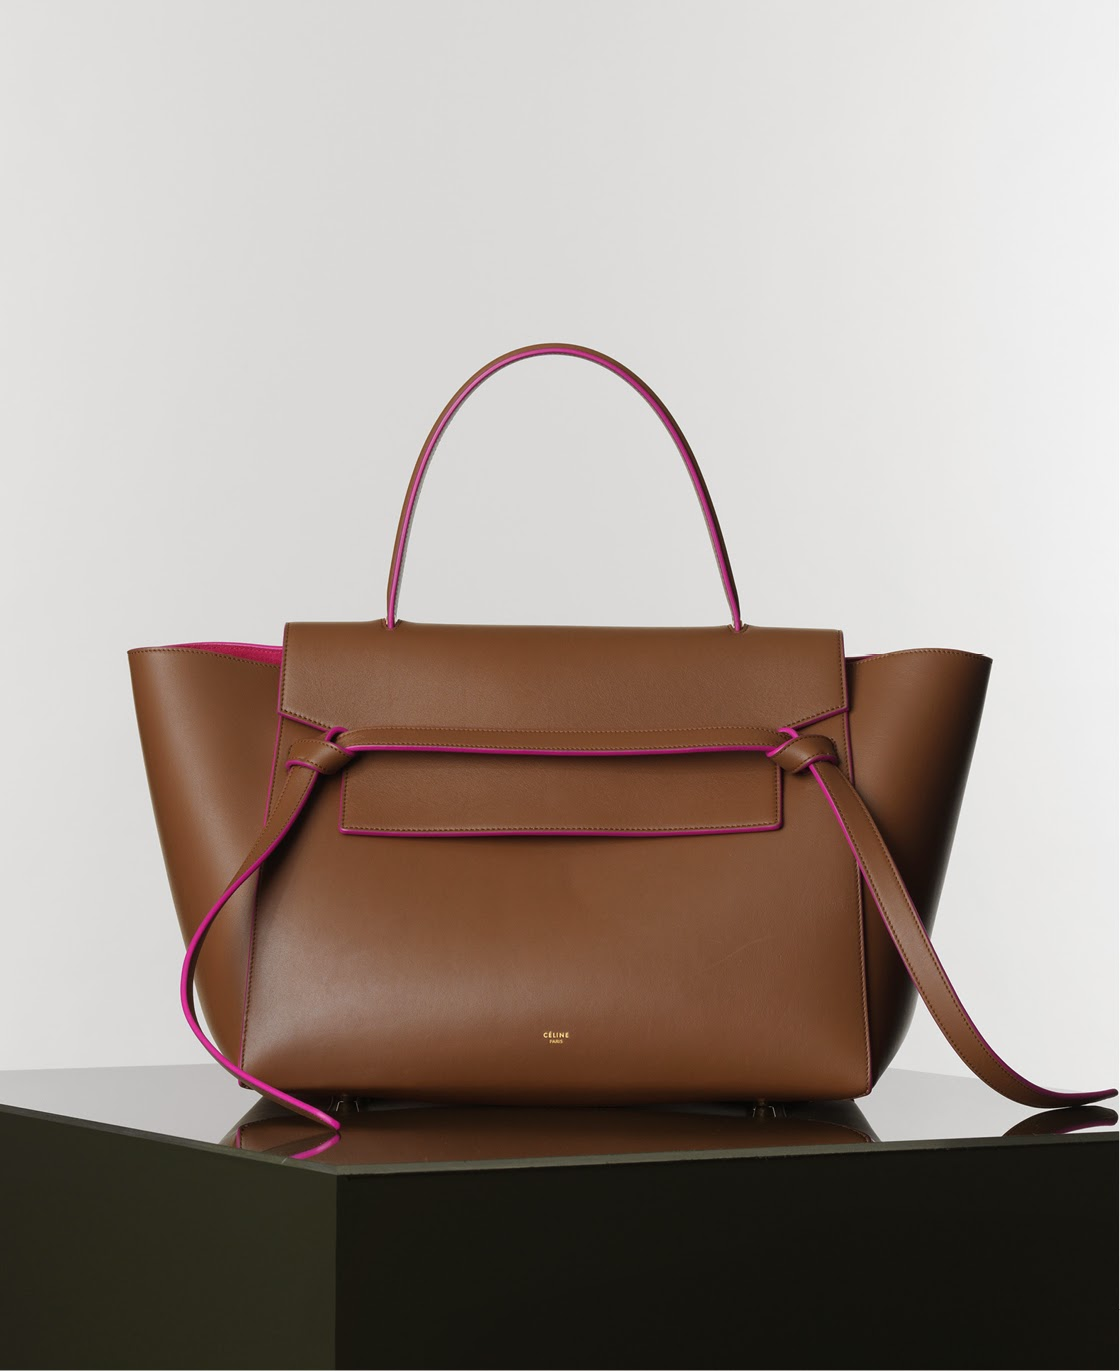 Céline's Winter 2014 Bags